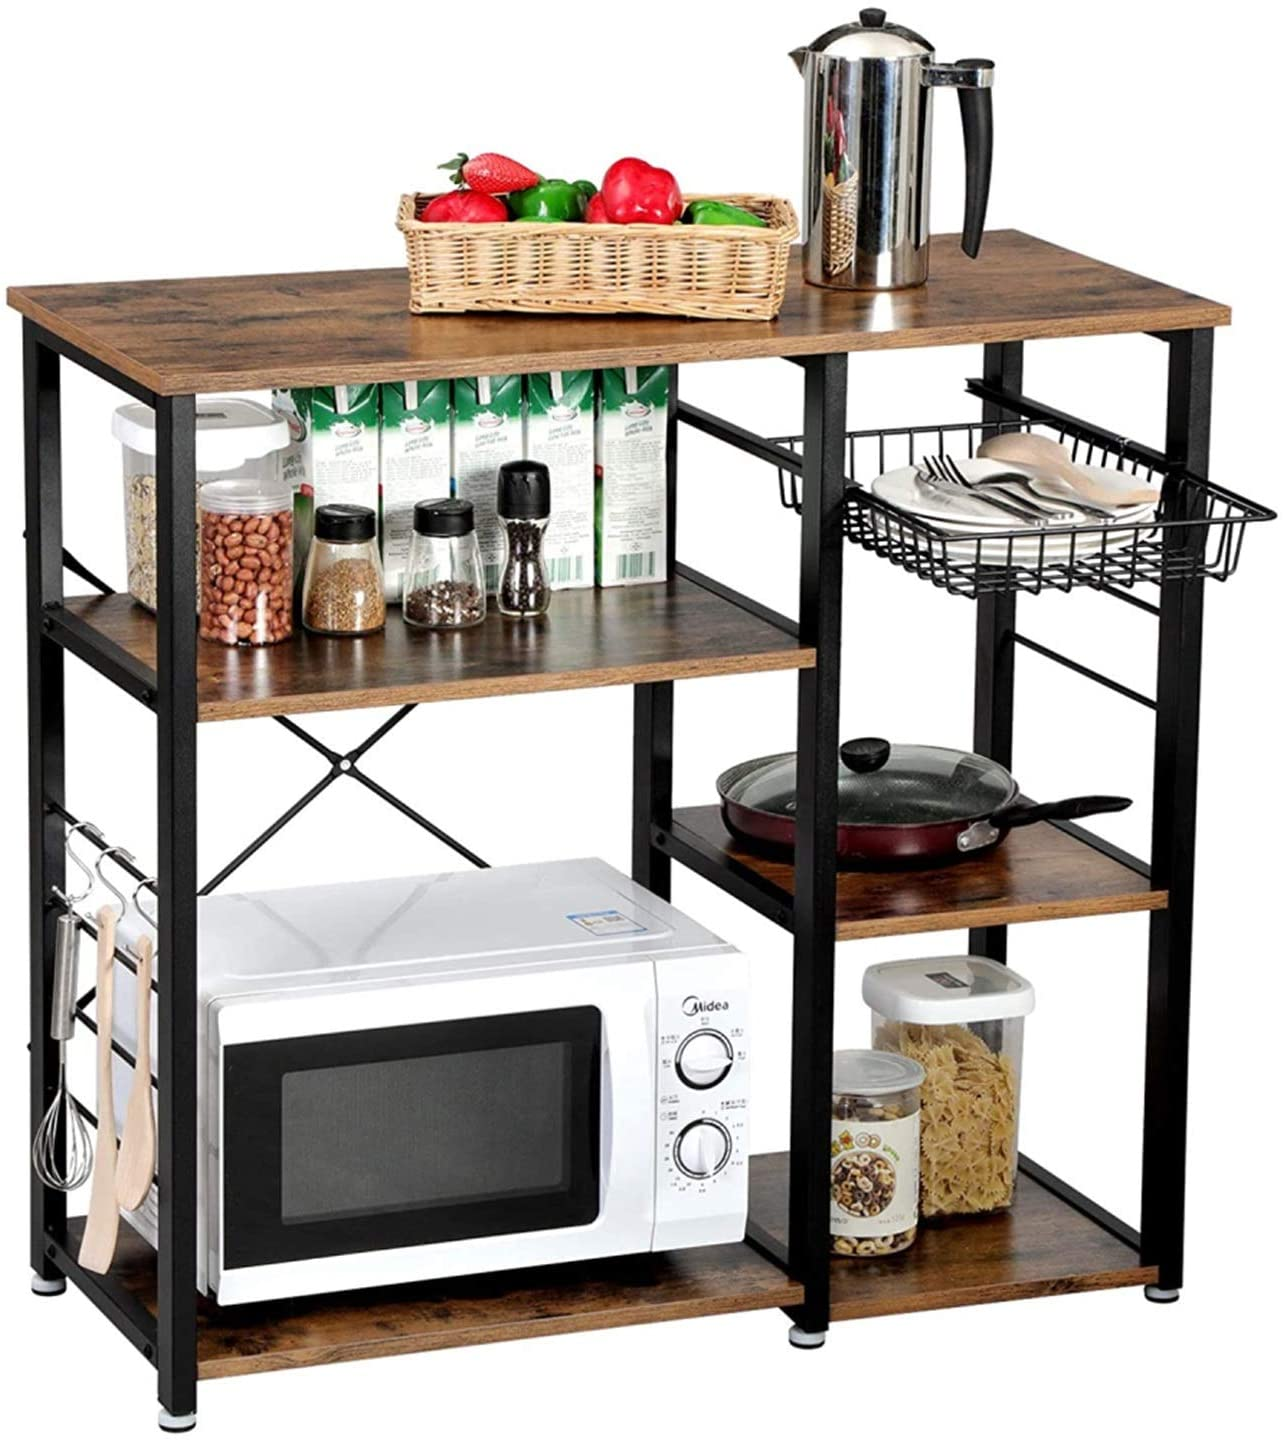 SCKTOO Microwave Stand 3-Tier Shelf, Utility Microwave Oven Stand Storage Cart Workstation Shelf with Wood Table,Stable Retro Metal Frame Rack for Kitchen